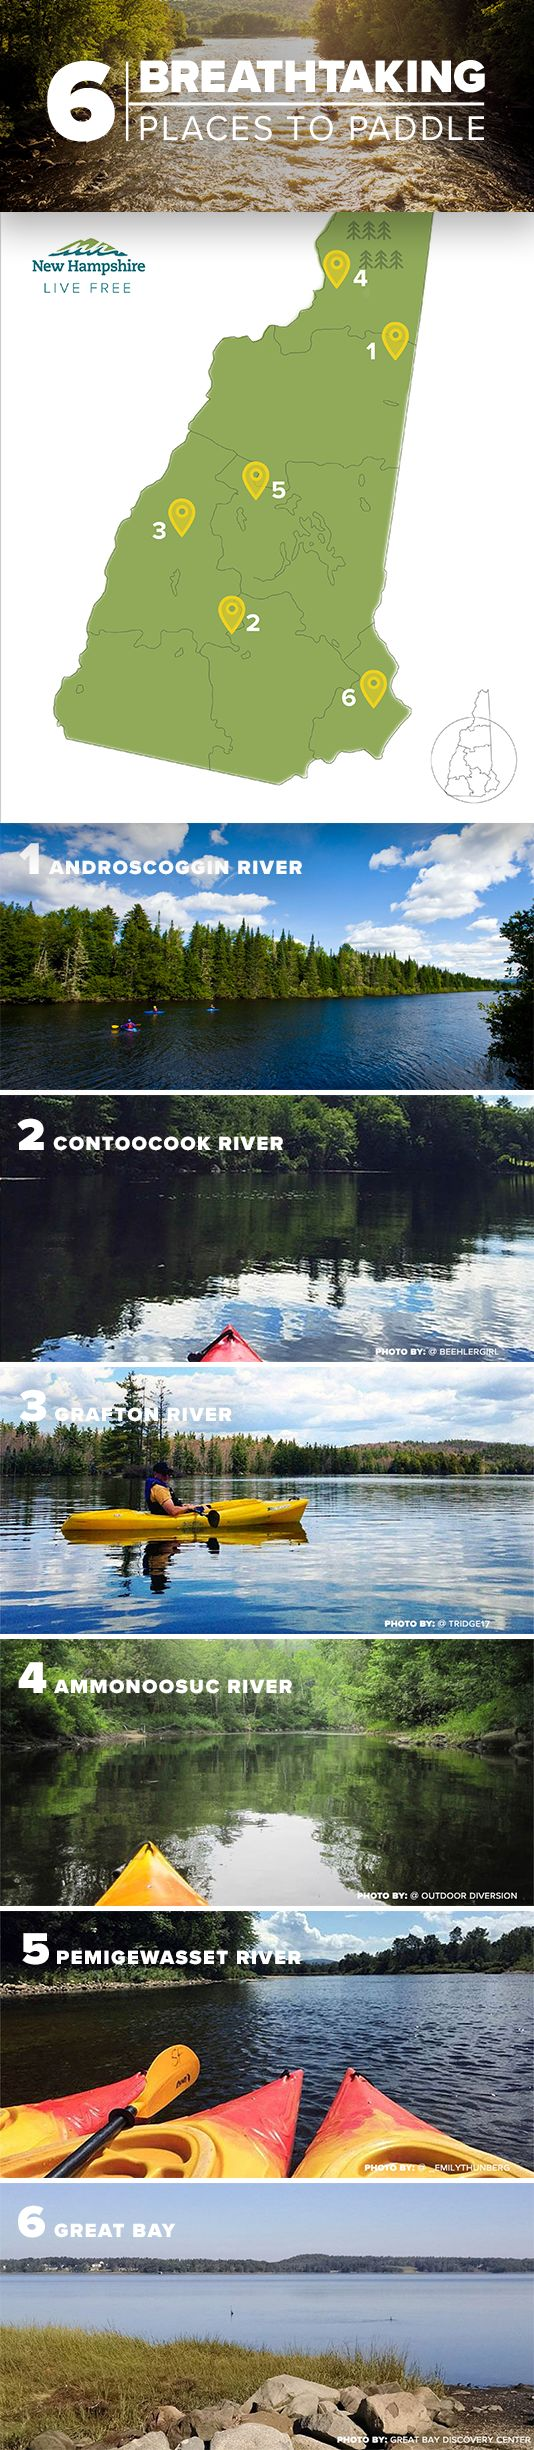 Summer vacation inspiration: kayaking in New Hampshire! Here are 6 Breathtaking New Hampshire Places to Paddle this summer.